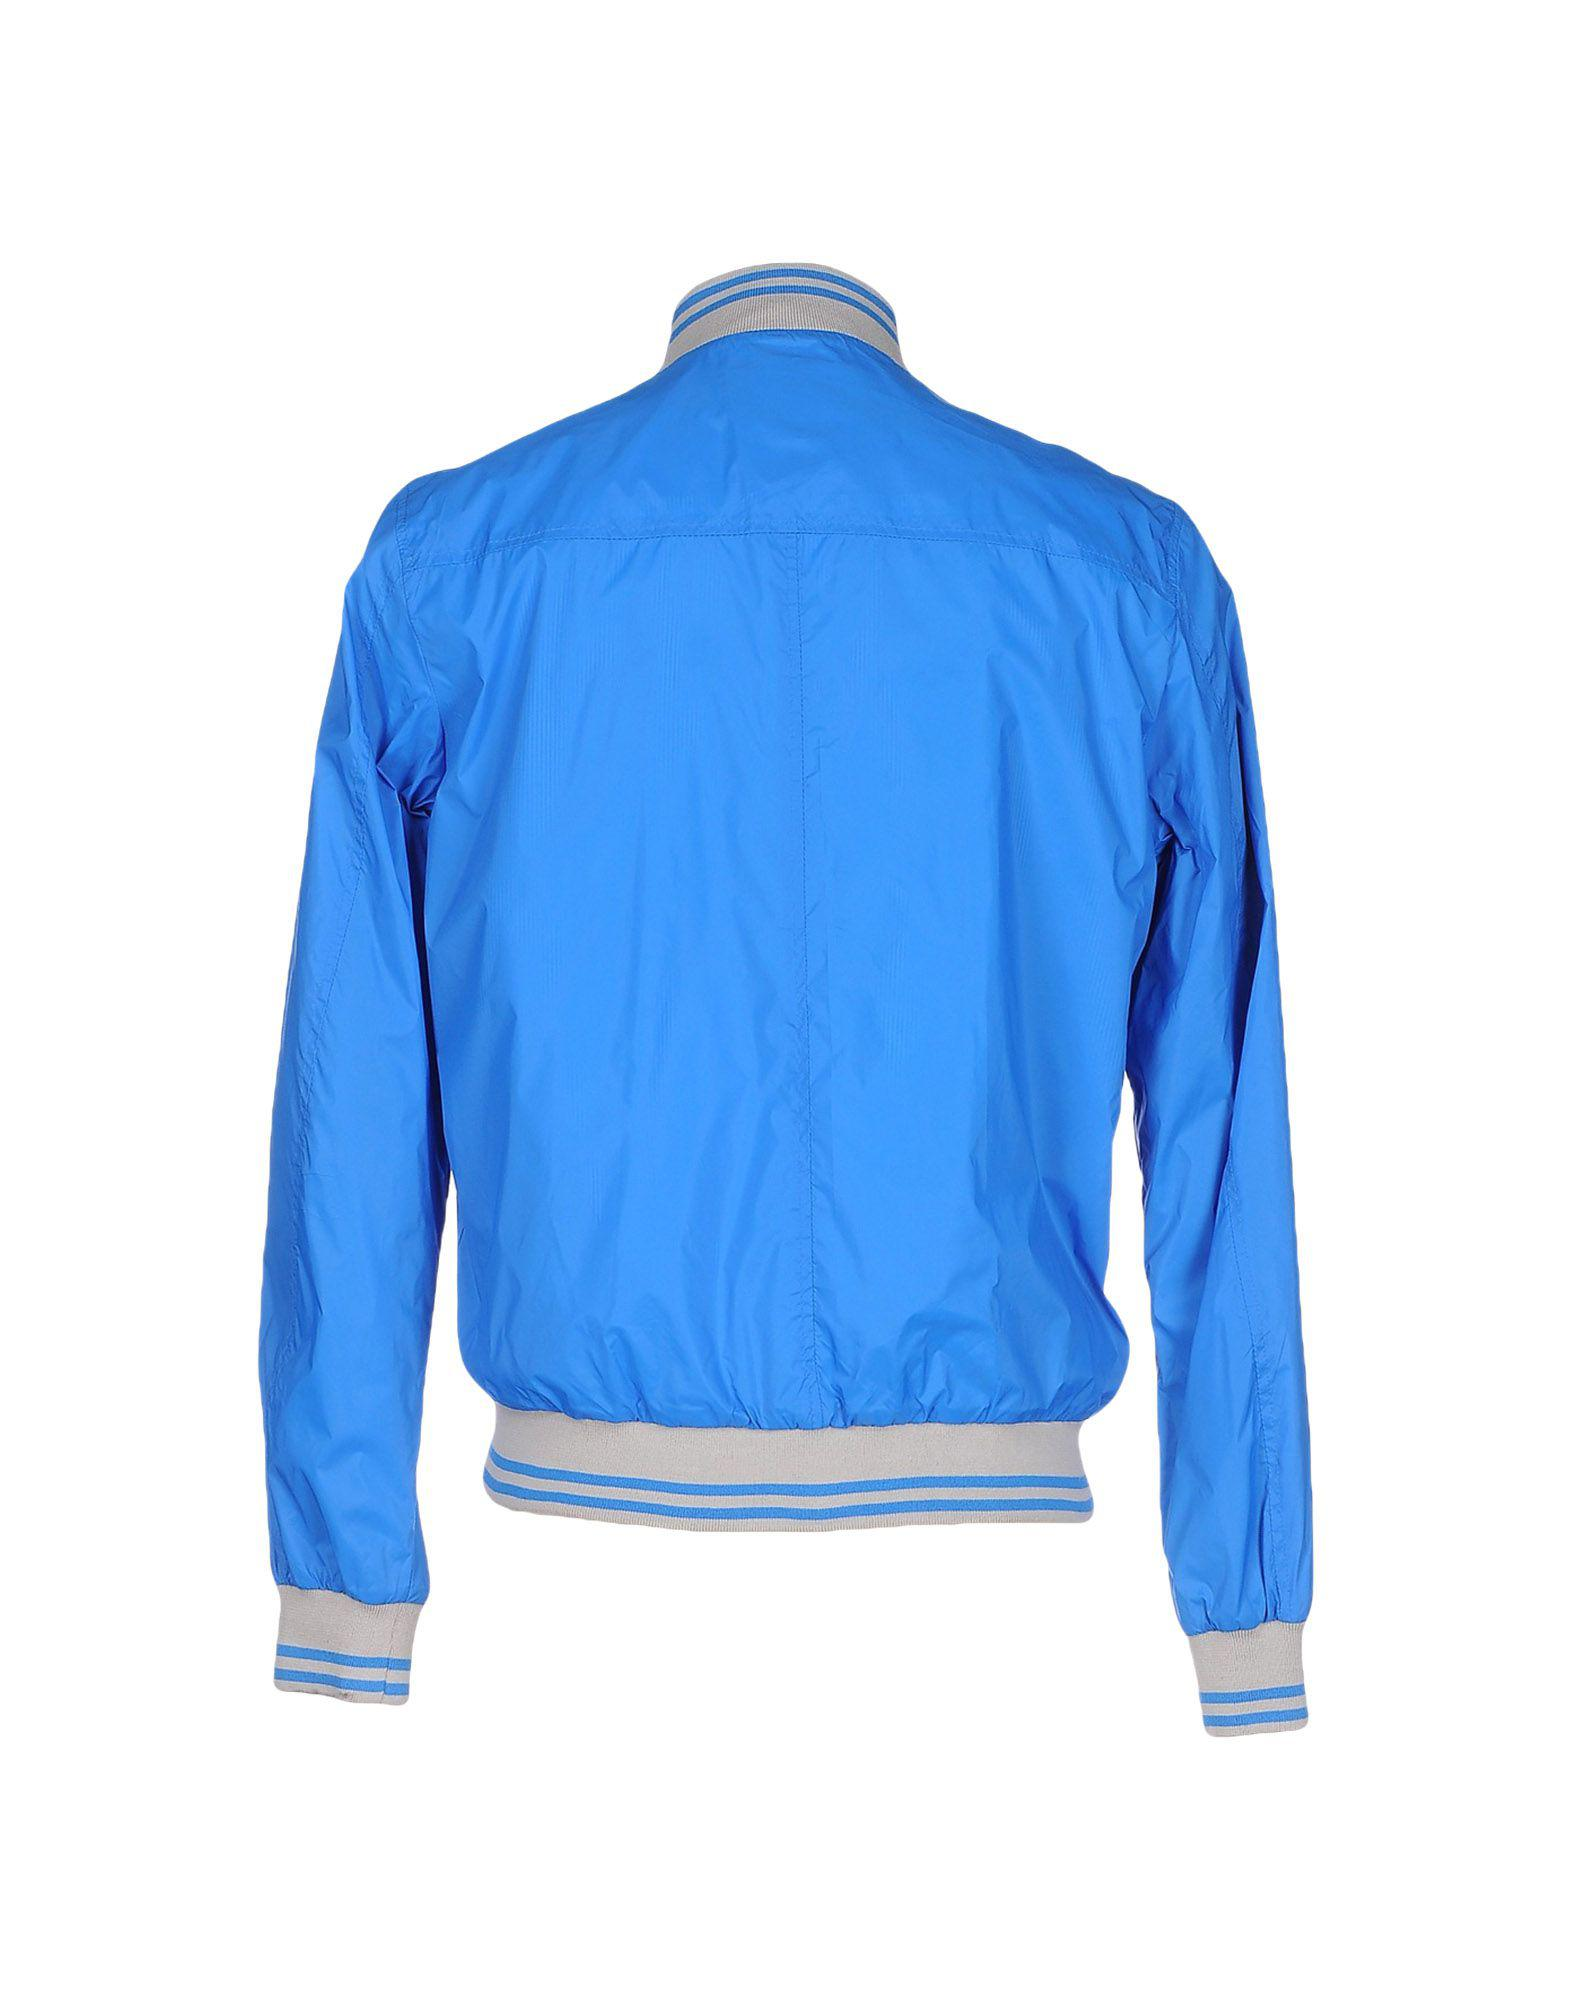 Romeo Gigli Synthetic Jacket in Bright Blue (Blue) for Men